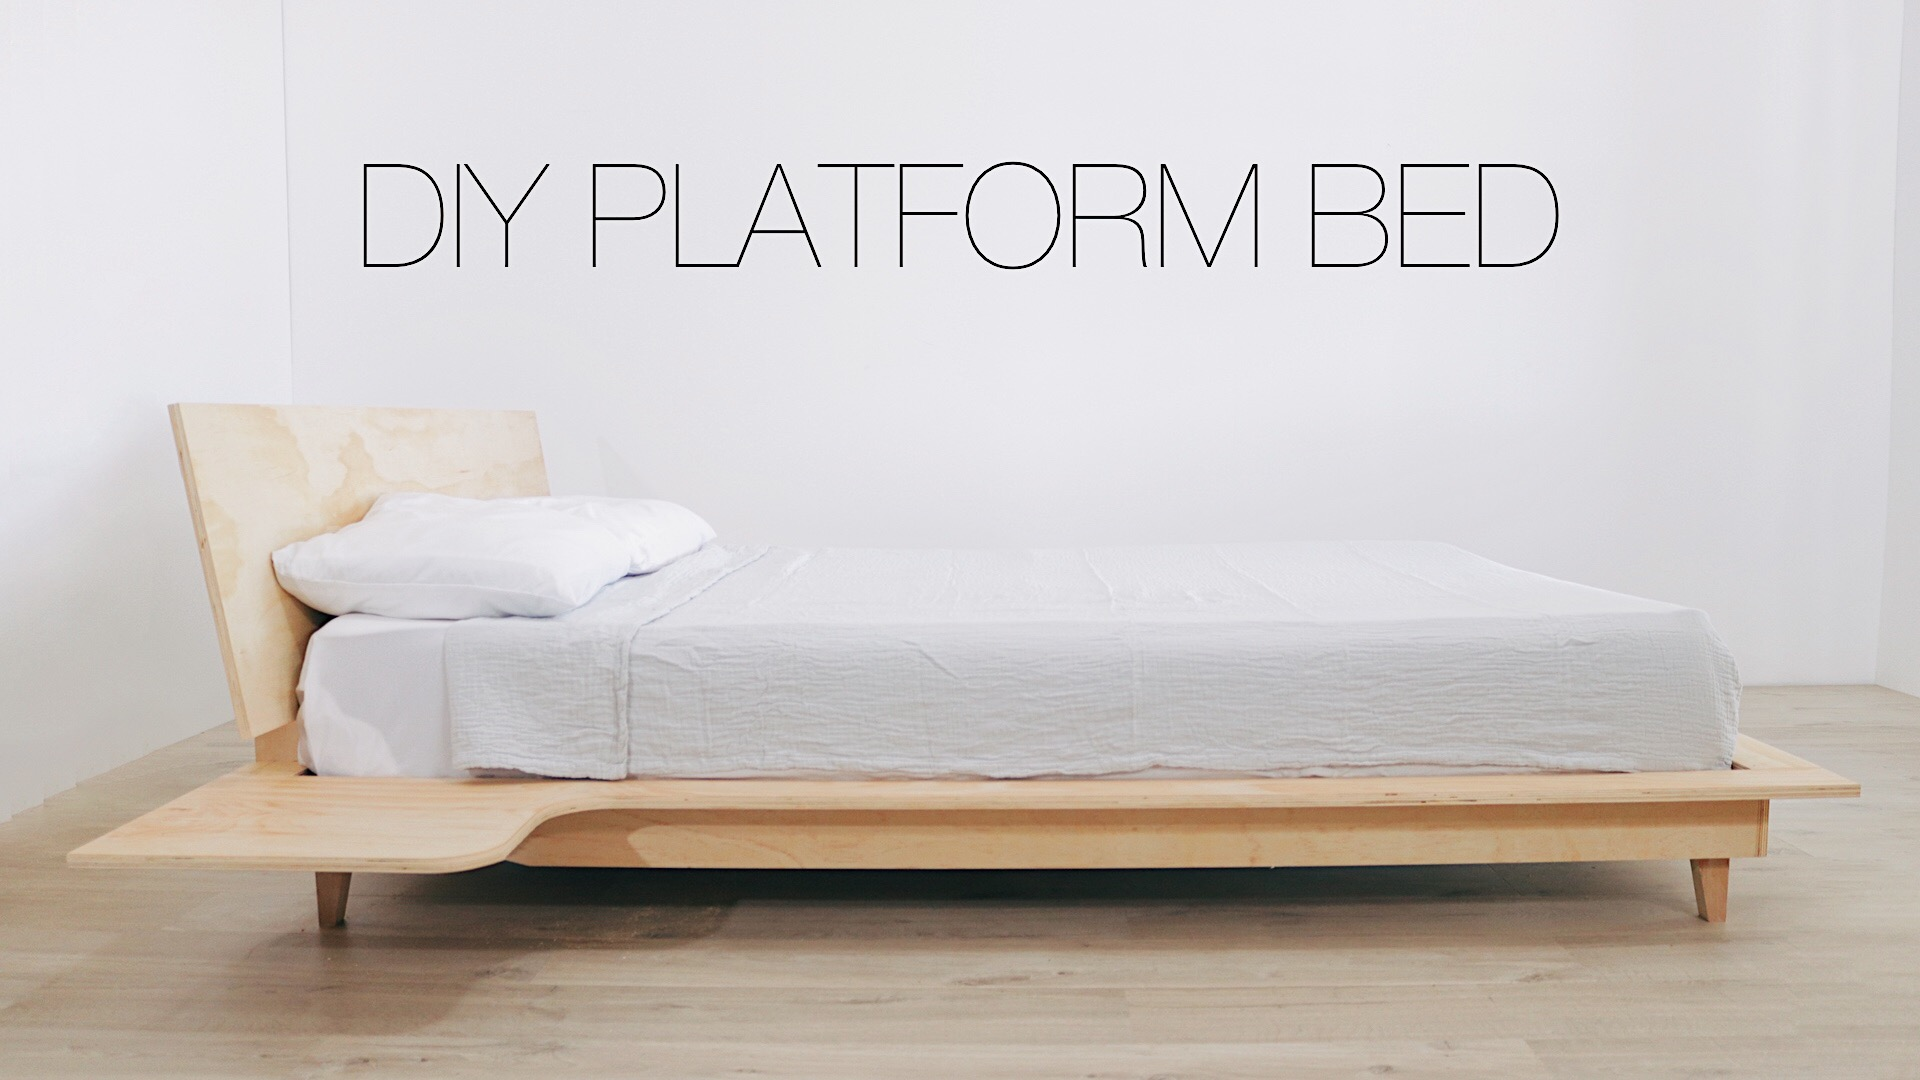 How to Build a Modern, Platform Bed with Integrated Nightstands by: Mike Montgomery | Modern Builds